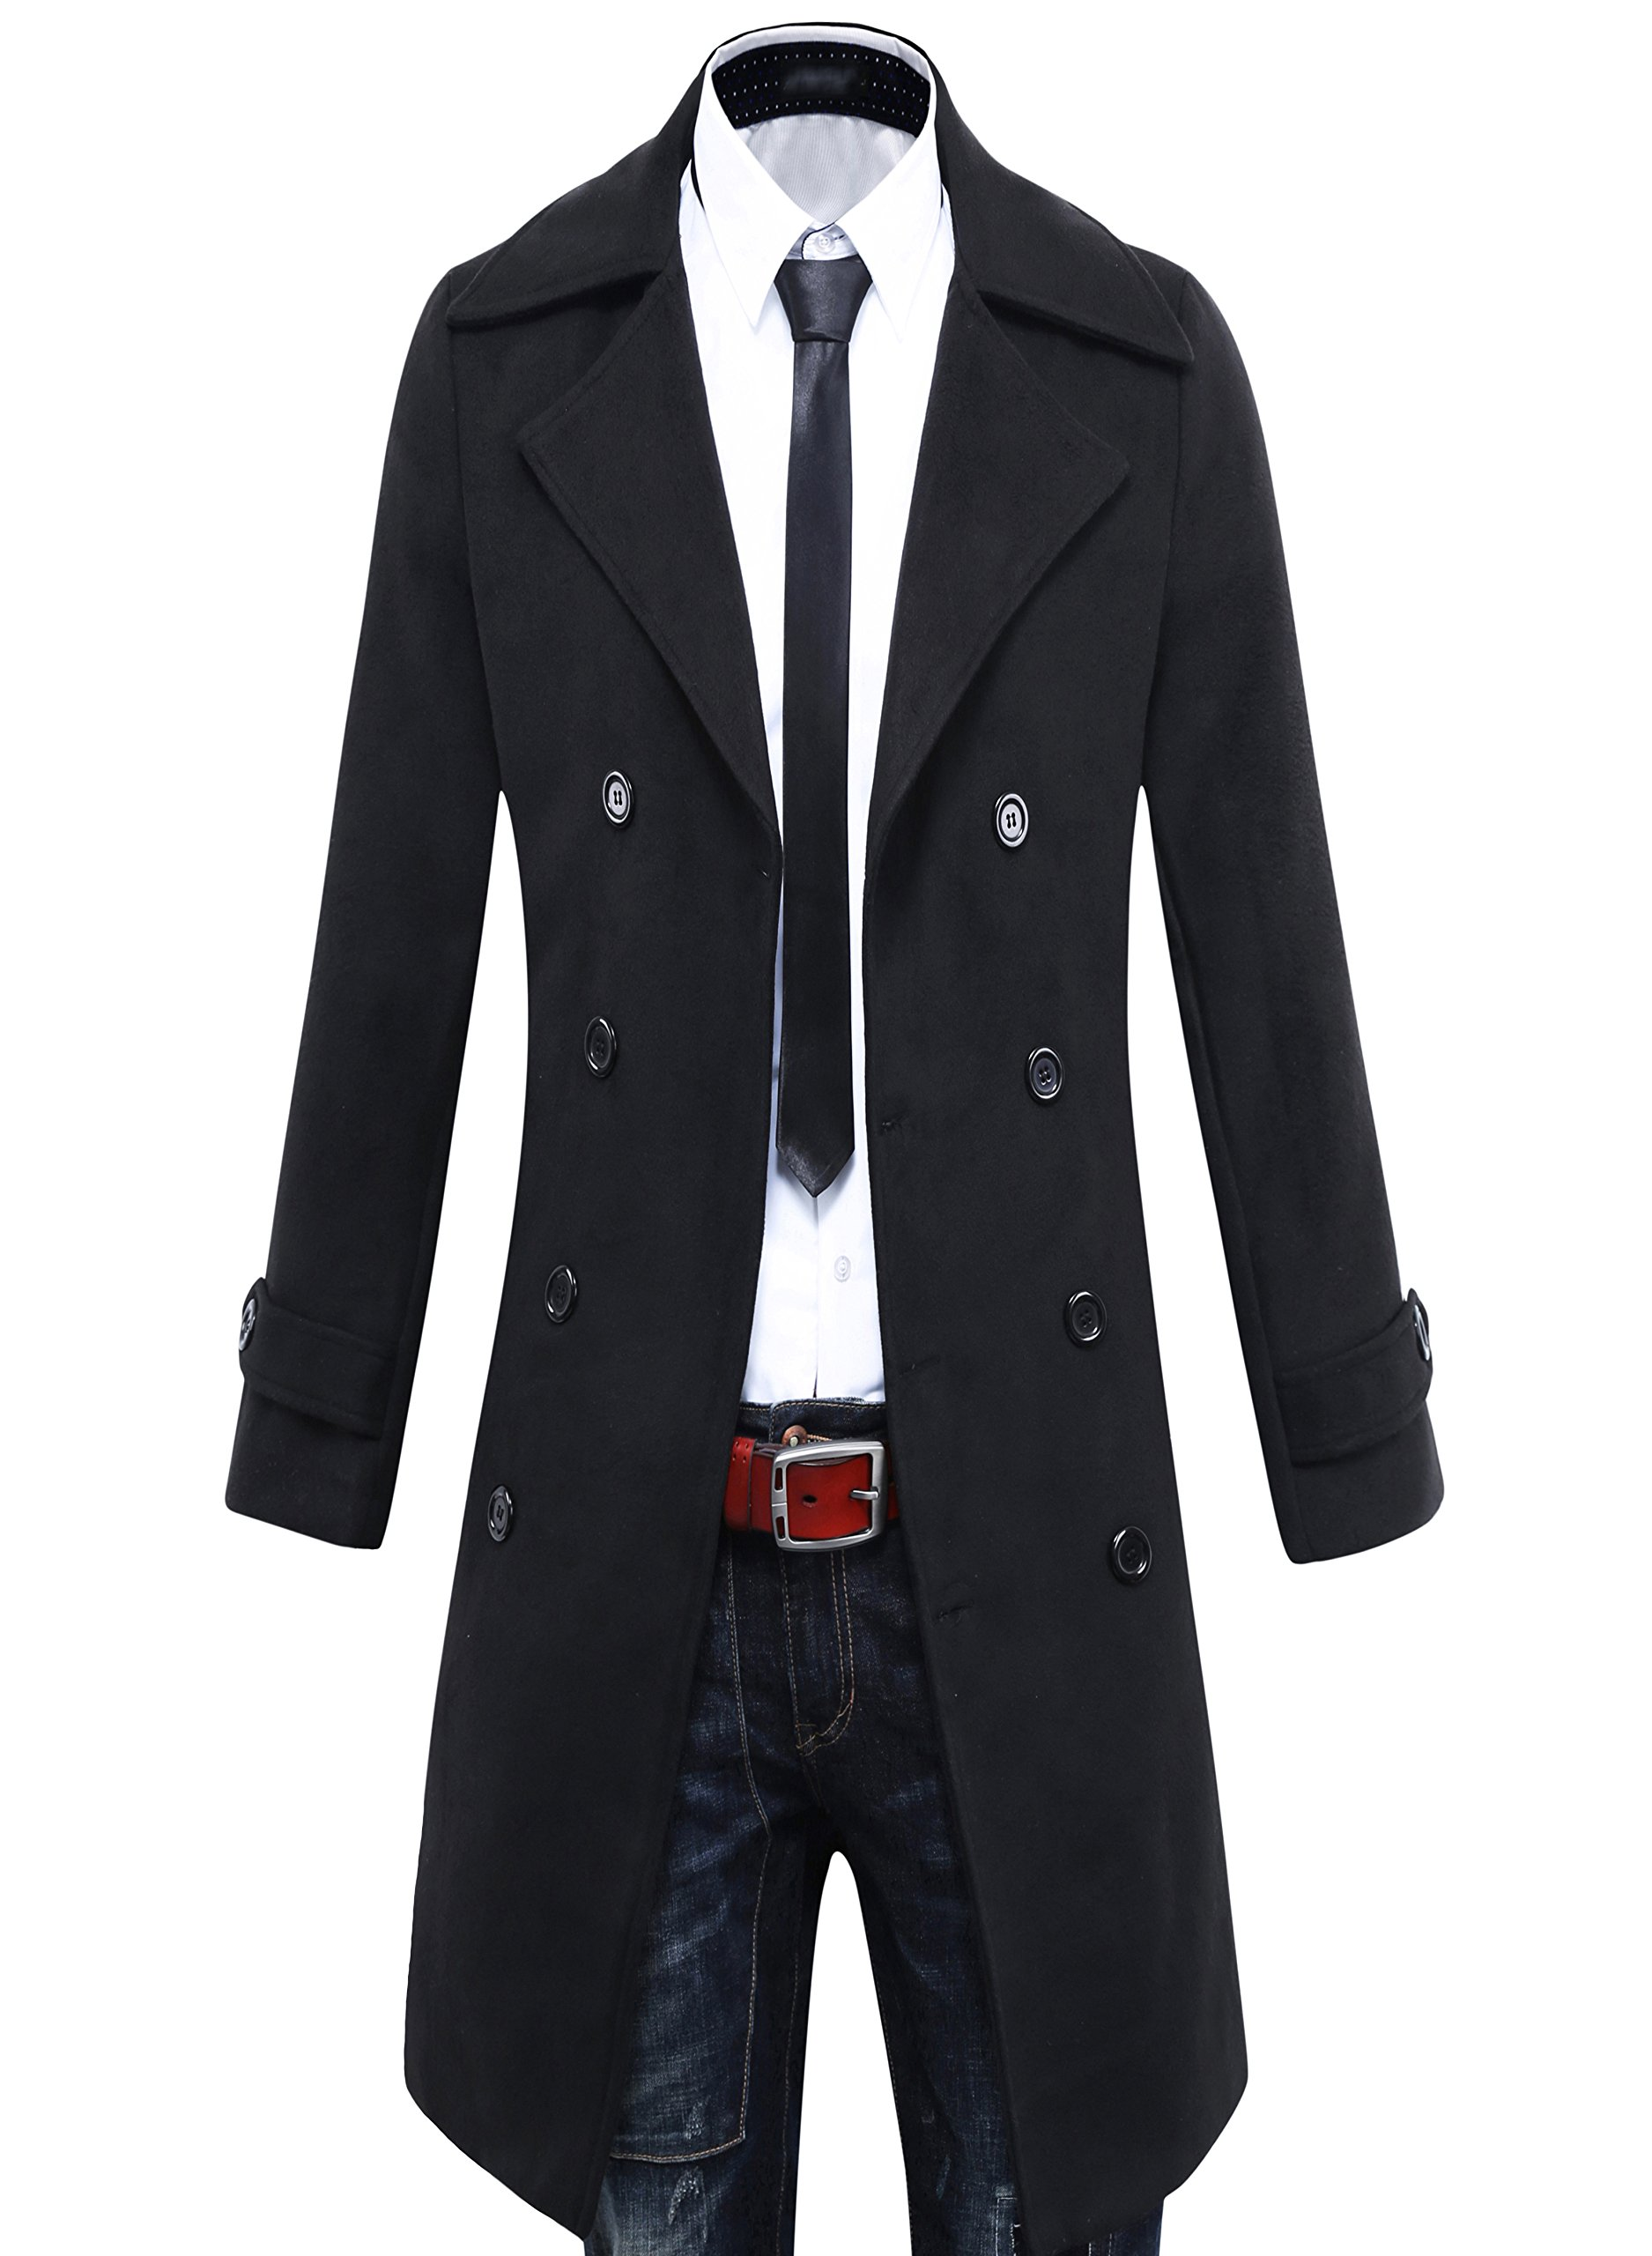 Beninos Men's Trench Coat Winter Long Jacket Double Breasted Overcoat (5625 Black, US:S/Asia L) by Beninos